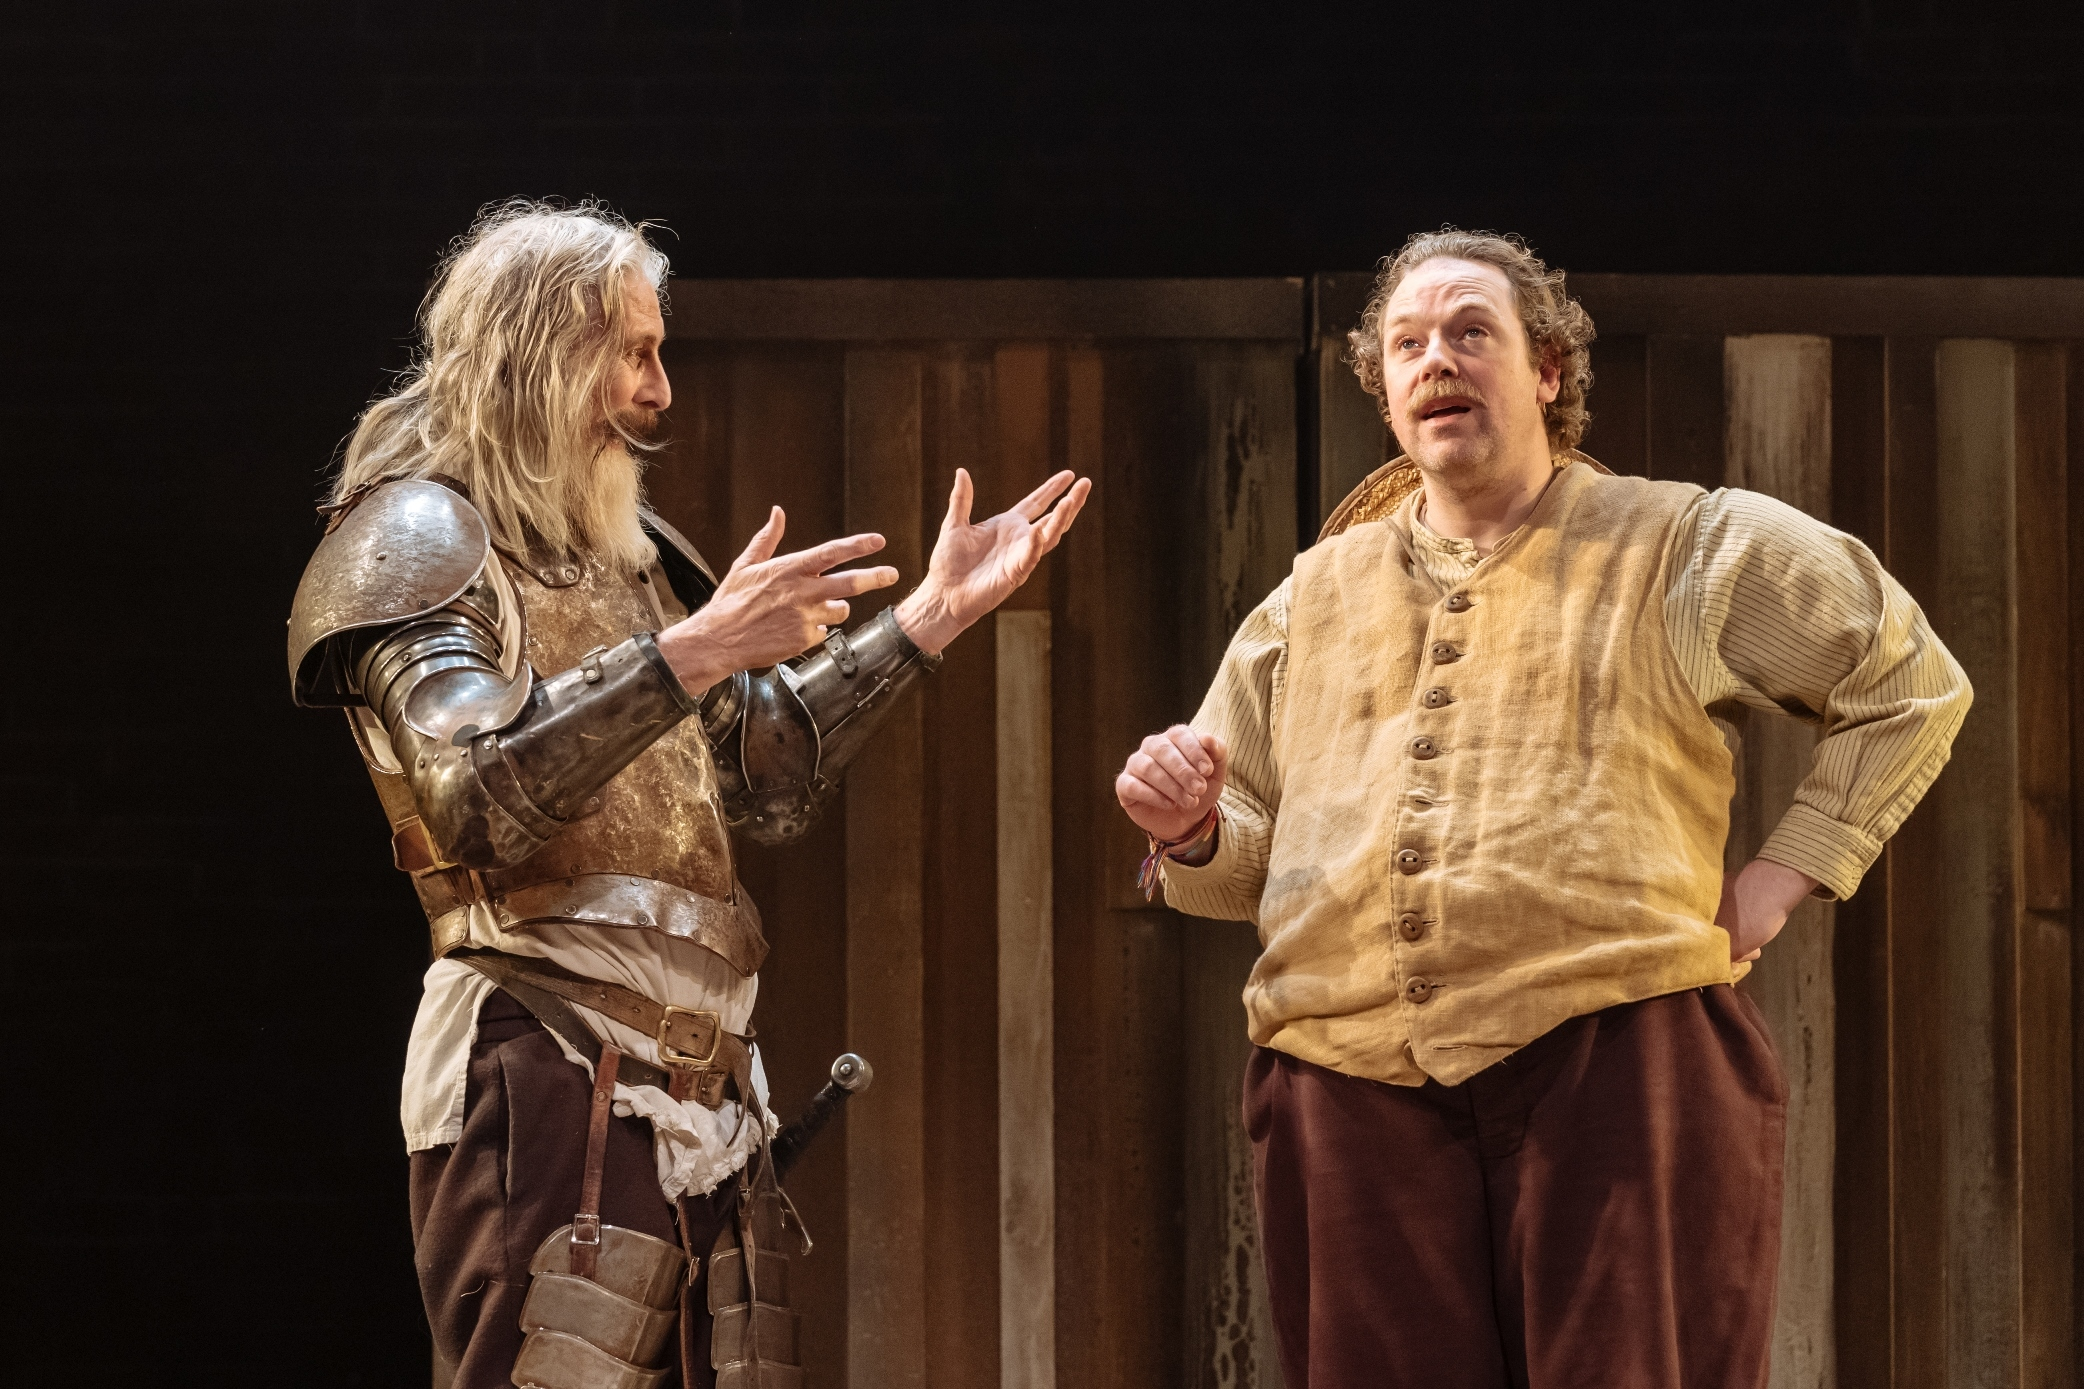 <p>'Don Quixote' at Garrick Theatre</p>